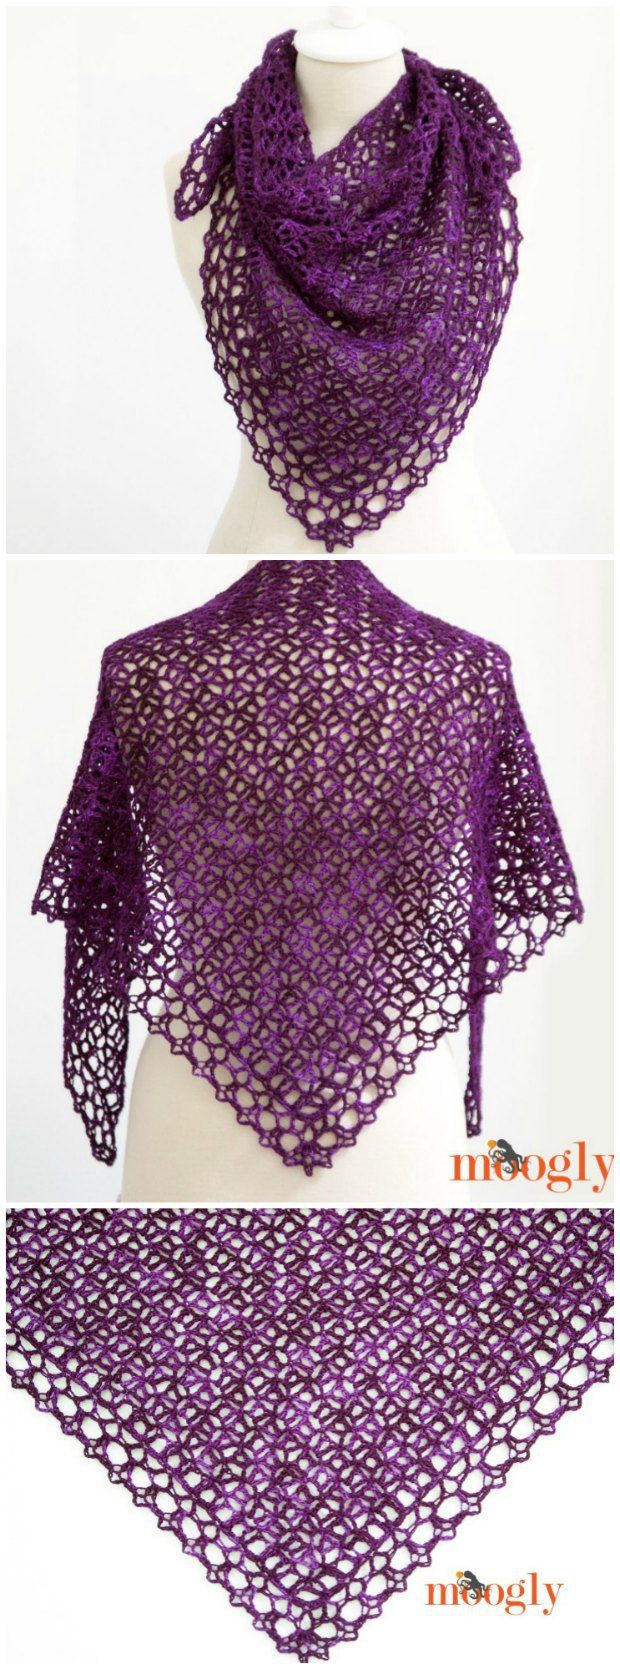 Free crochet pattern and video tutorial for how to make this gorgeous shawl.  You'll be amazed, but it's actually very simple!